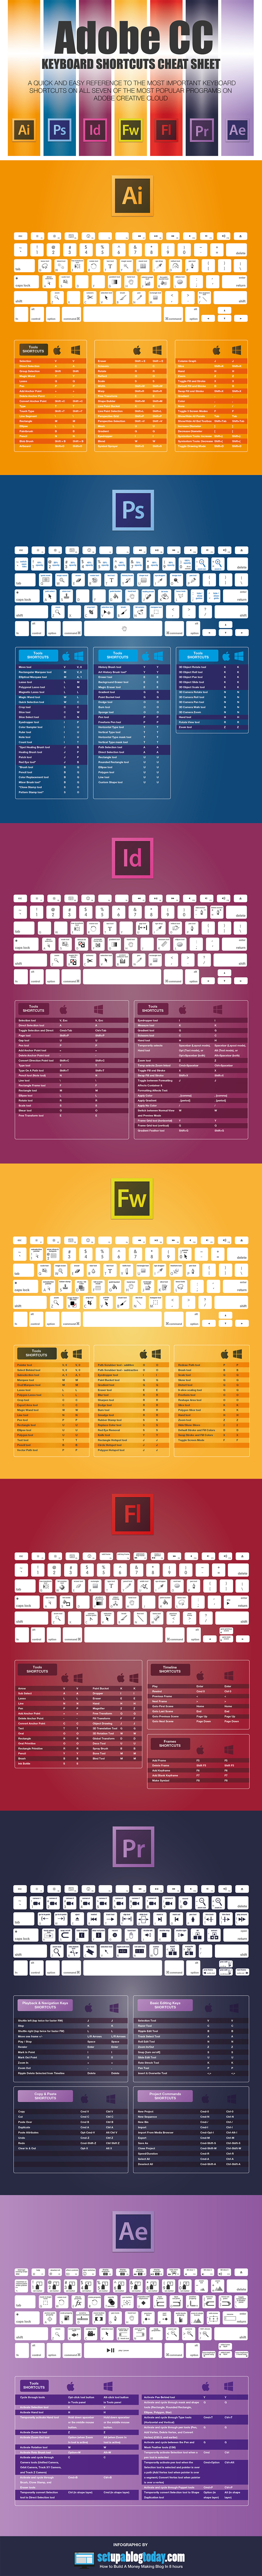 2015-ultimate-adobe-cc-keyboard-shortcuts-cheatsheet